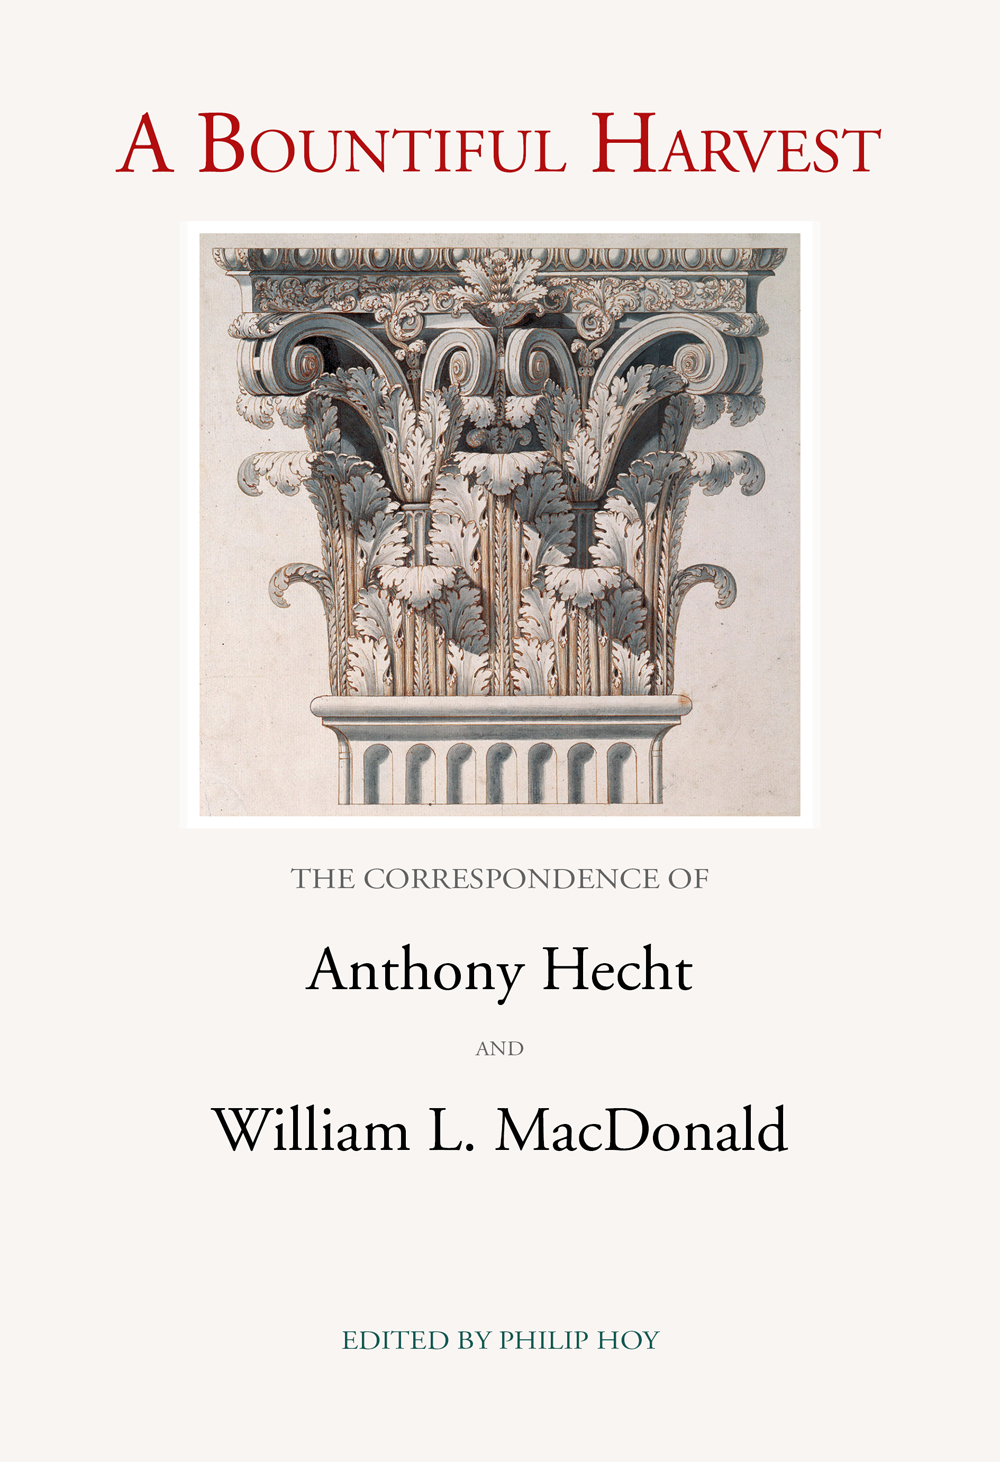 A Bountiful Harvest: The Correspondence of Anthony Hecht and William L. MacDonald